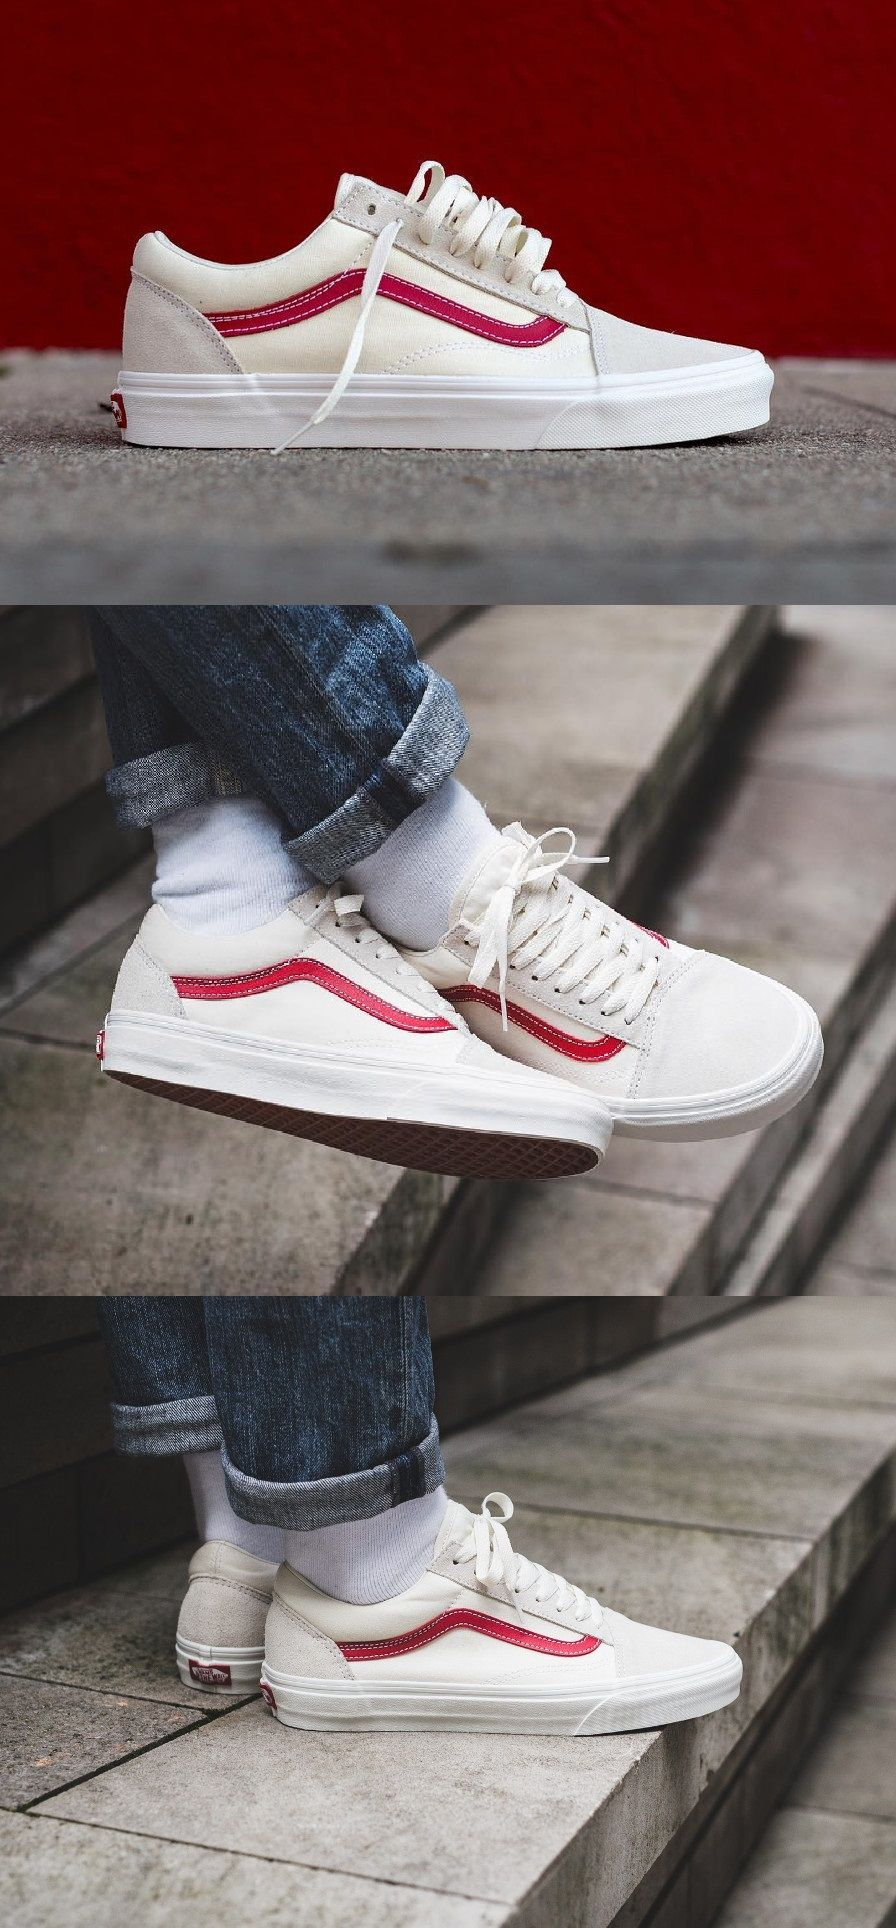 vans old skool white rococco red